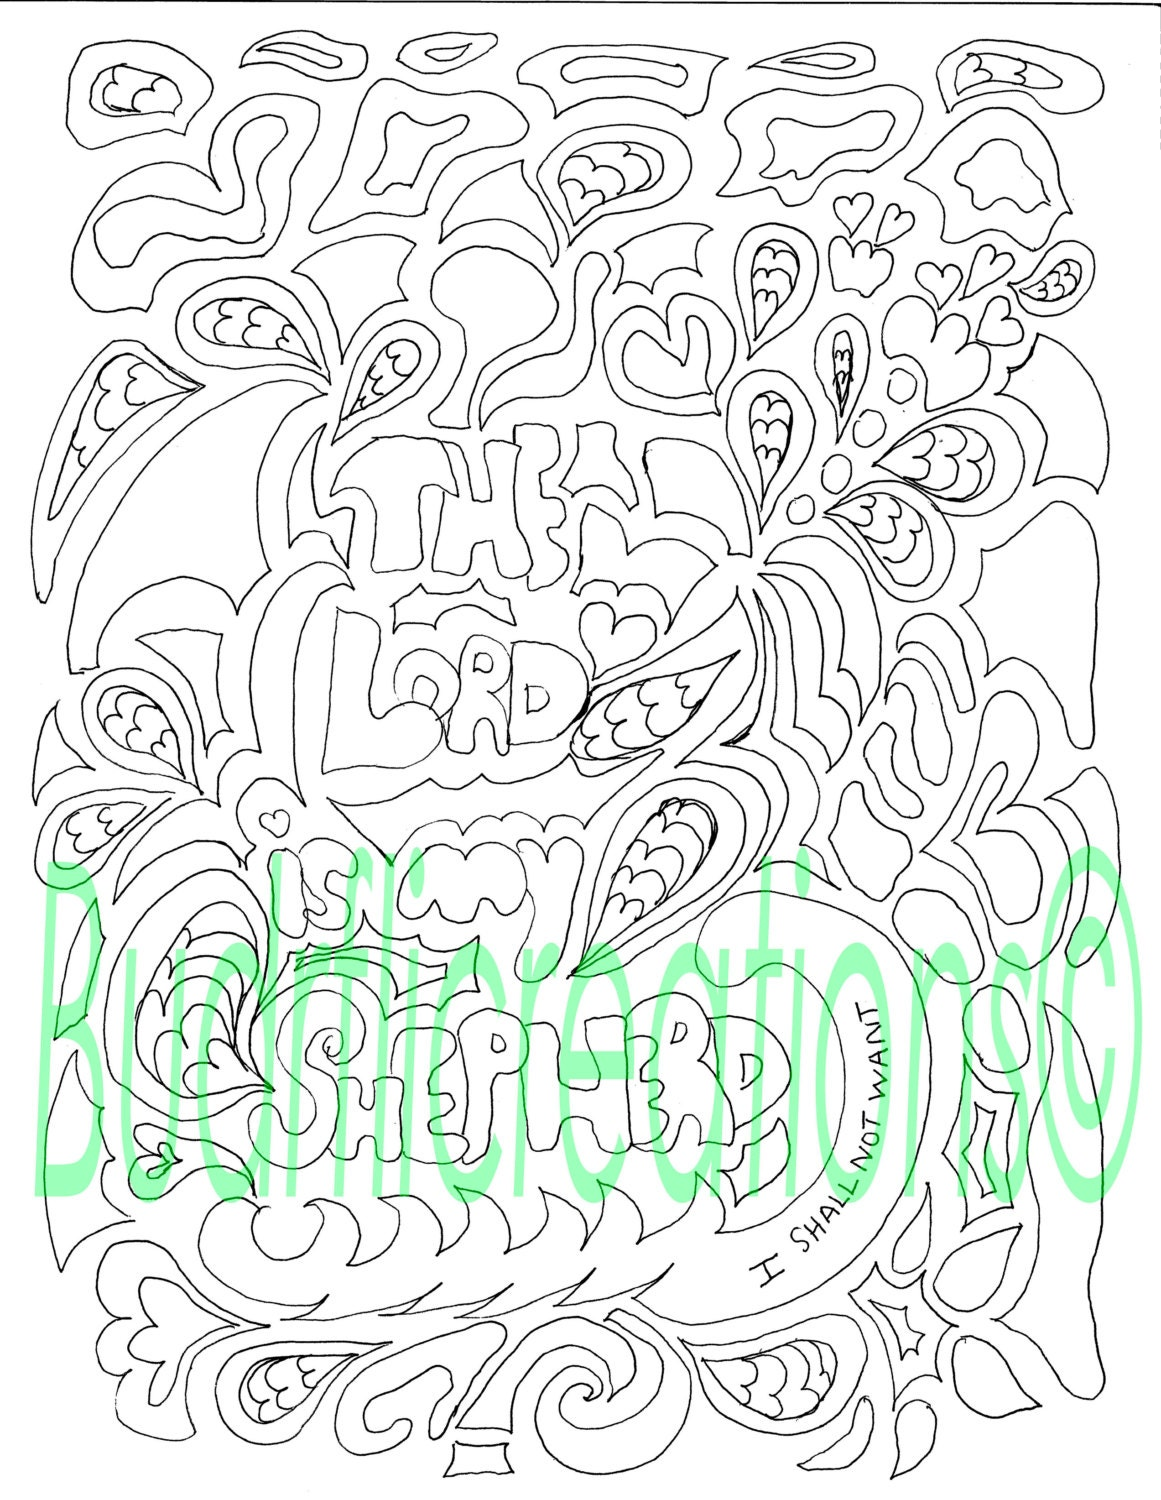 psalms 23 the lord is my shepherd coloring page digital